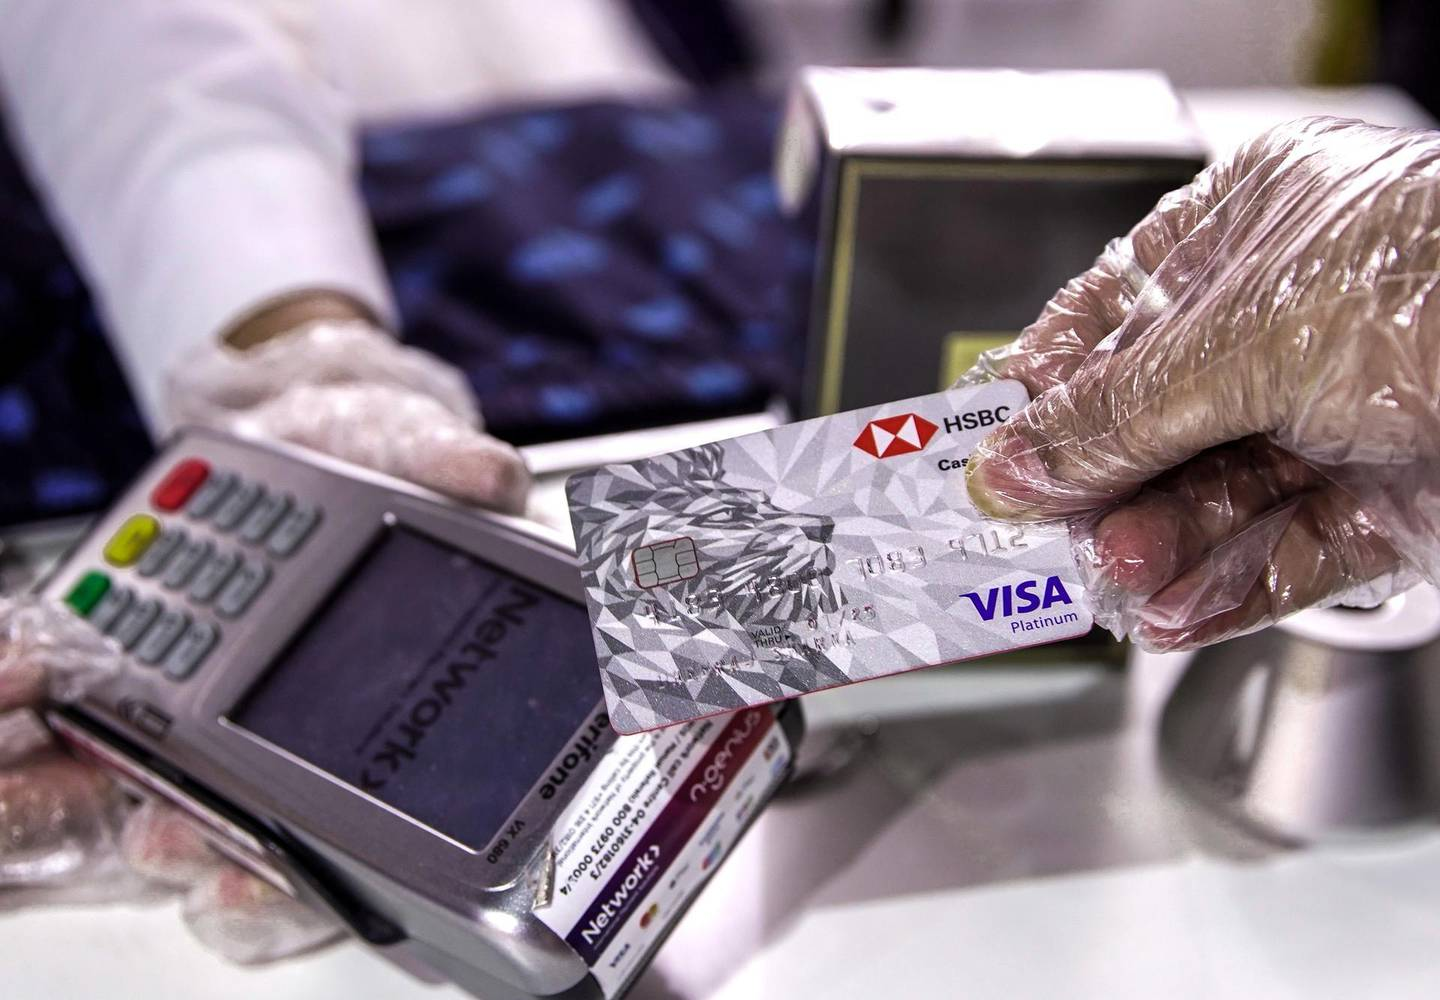 Abu Dhabi, United Arab Emirates, May 18, 2020.    Cashless payments at the Al Raha Mall on the first day of reopening during the Covid-19 pandemic.Victor Besa / The NationalSection:  NAReporter: